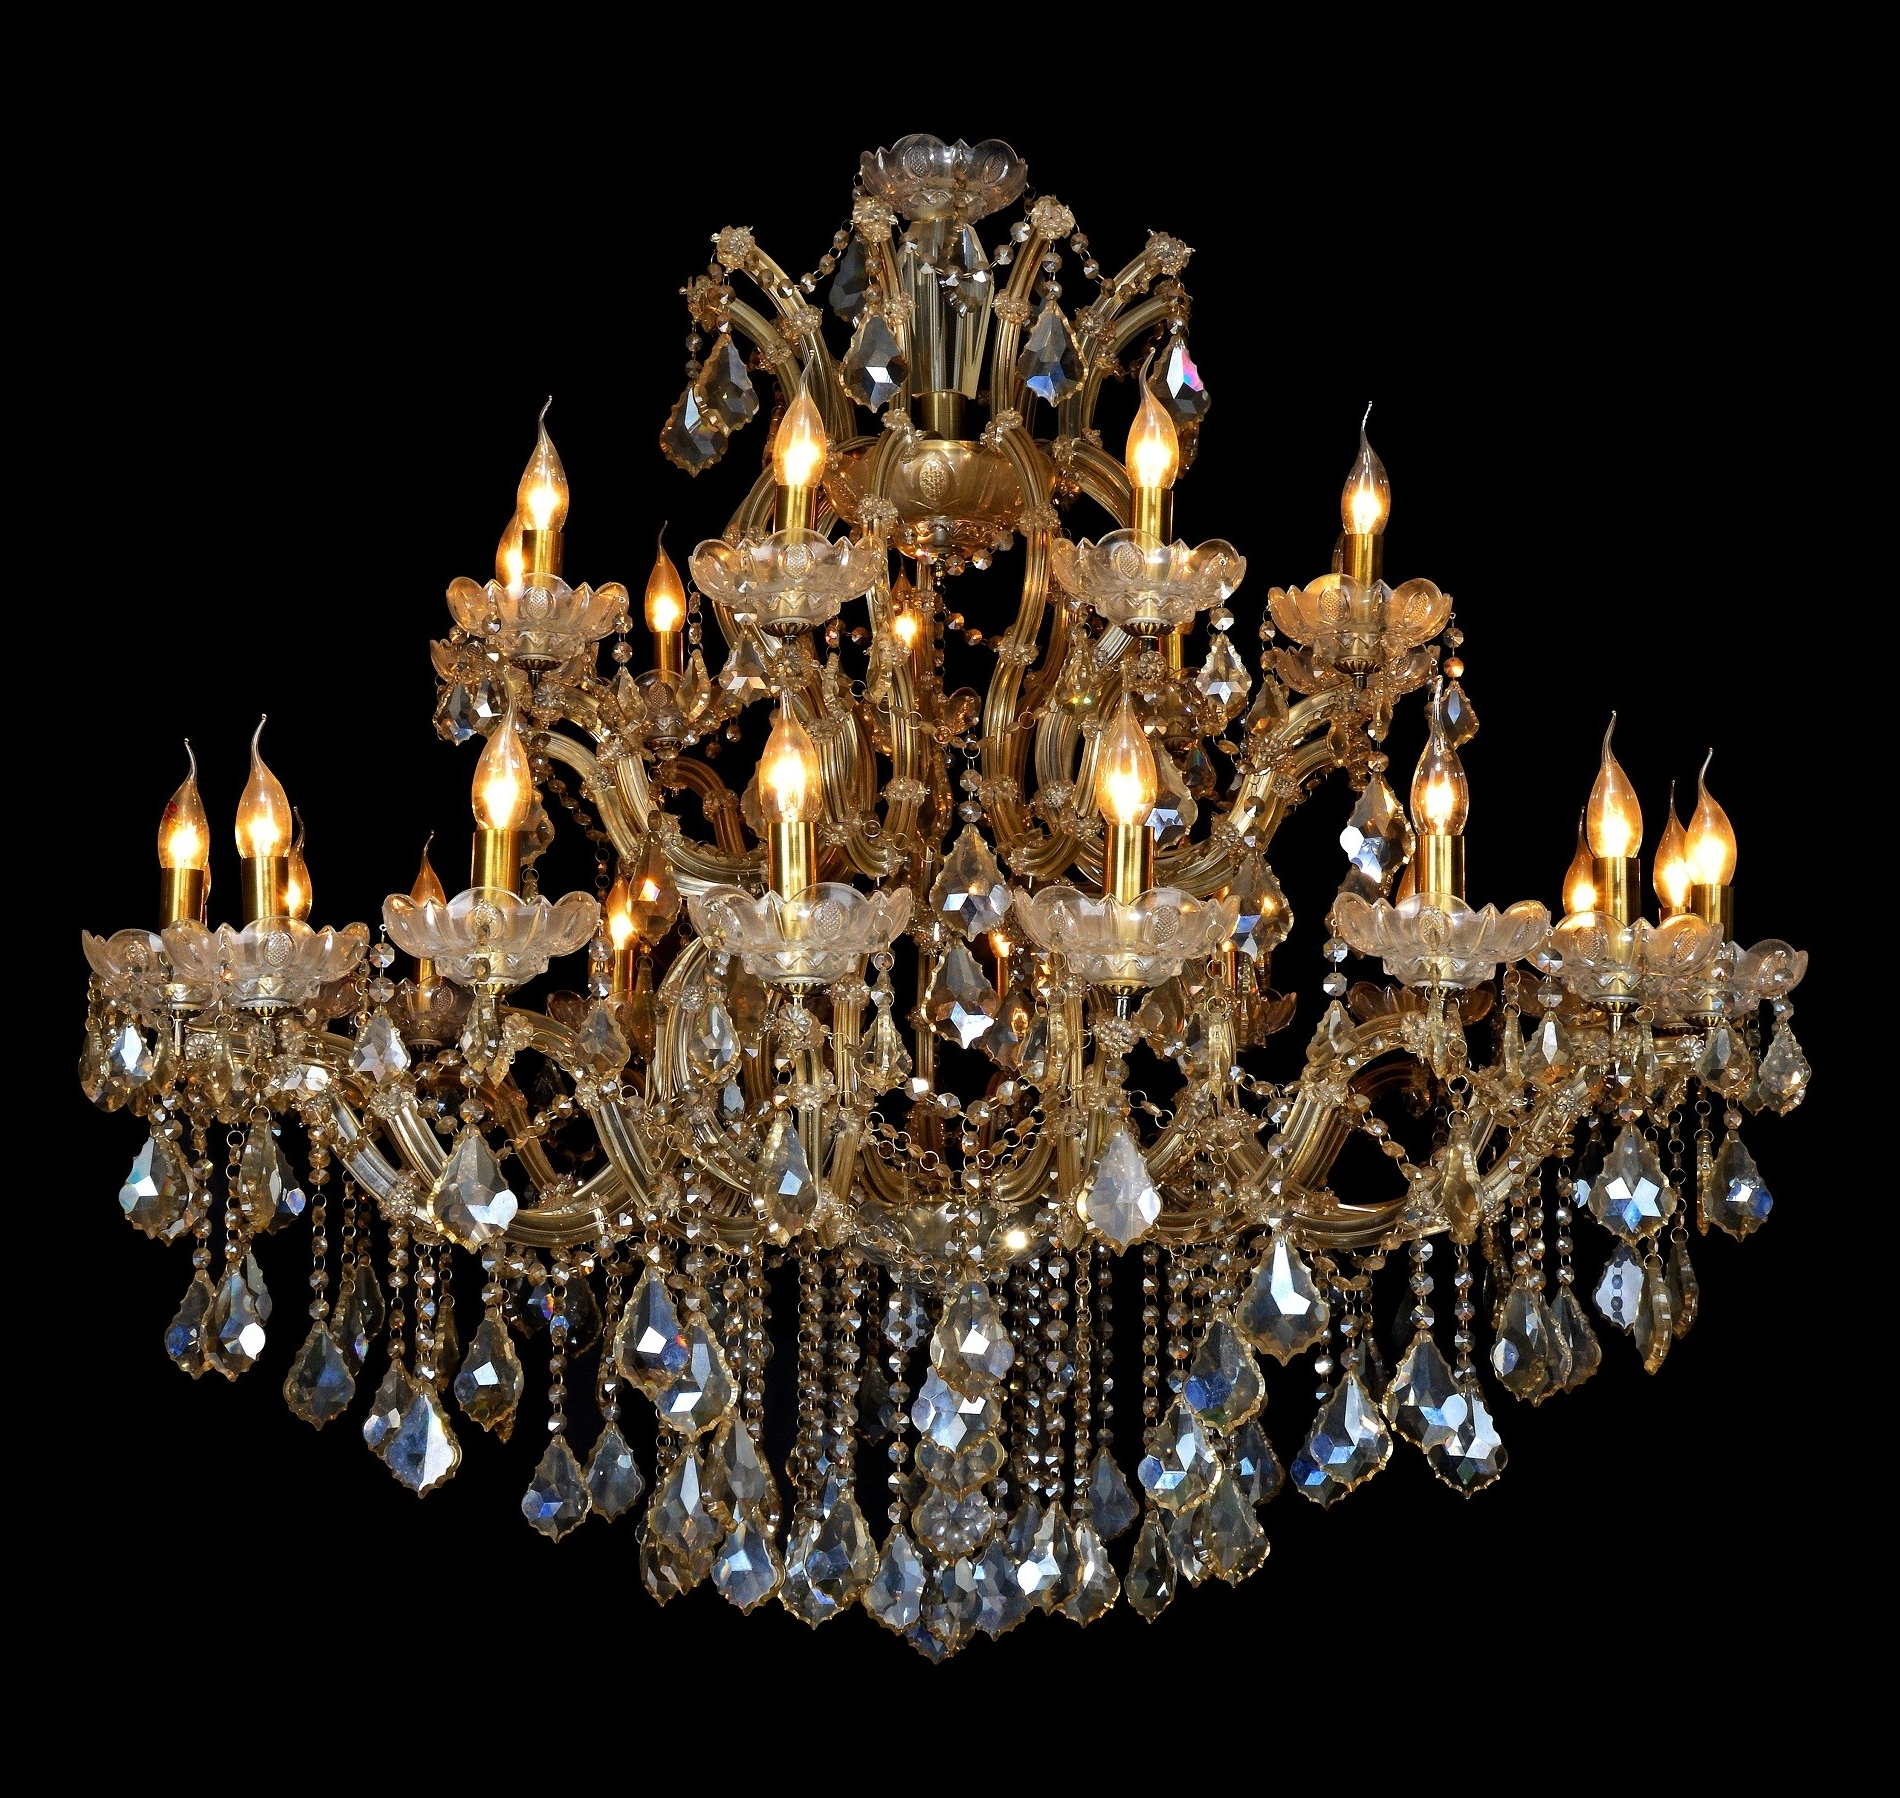 Queen Royal Victoria Of Uk, 27L, 2 Tiers Extra Large Over Size K9 Regarding Most Up To Date Extra Large Crystal Chandeliers (Gallery 10 of 20)